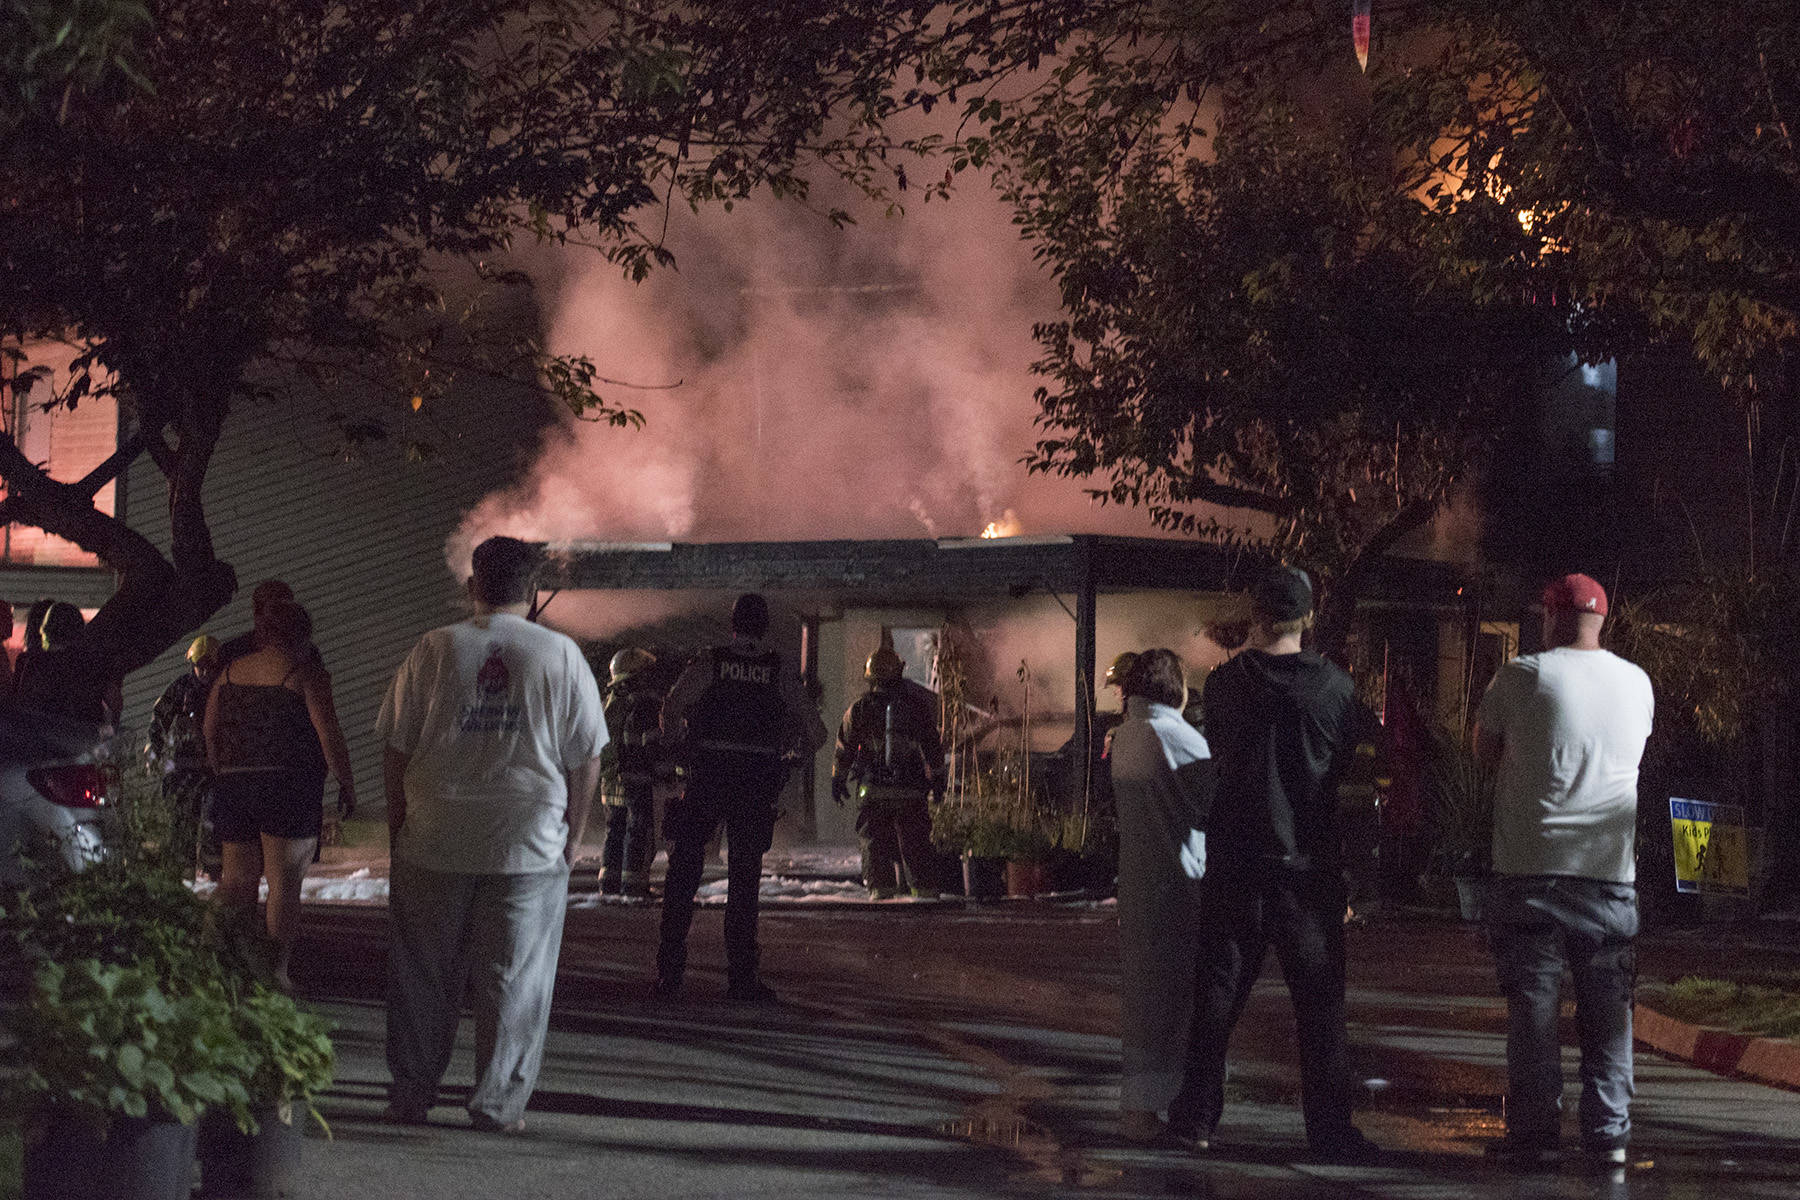 Maple Ridge fire department responded to a townhouse fire at 207 Street and Dewdney Trunk Road in the early hours of Thursday, Sept. 3, 2020. (Special to The News)